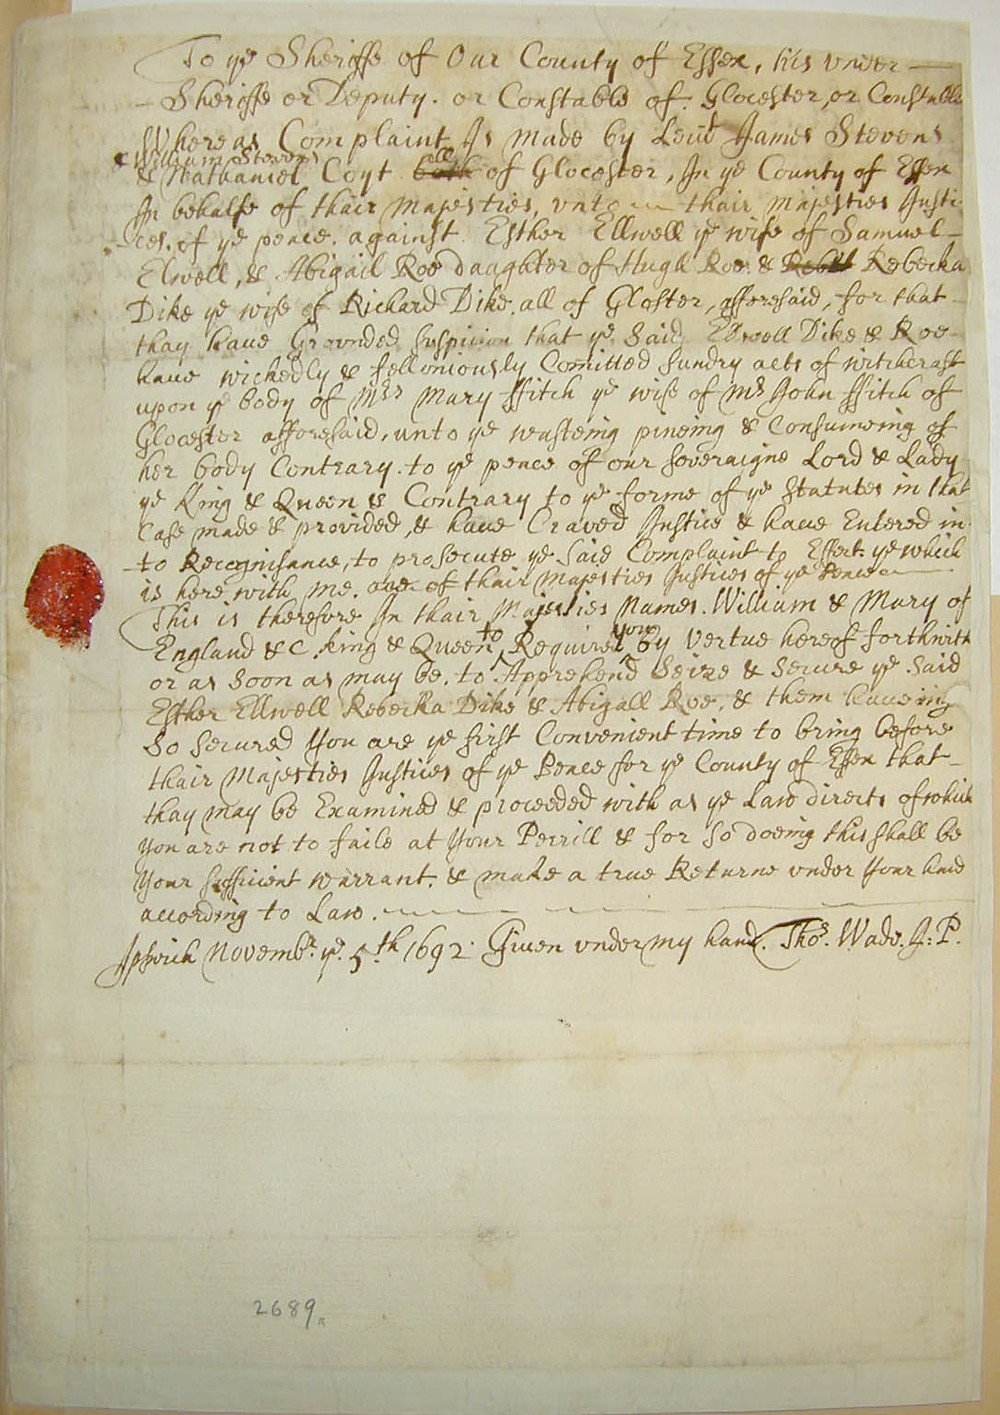 The arrest warrant for Esther Elwell on charges of witchcraft from the Salem Witch Trials.